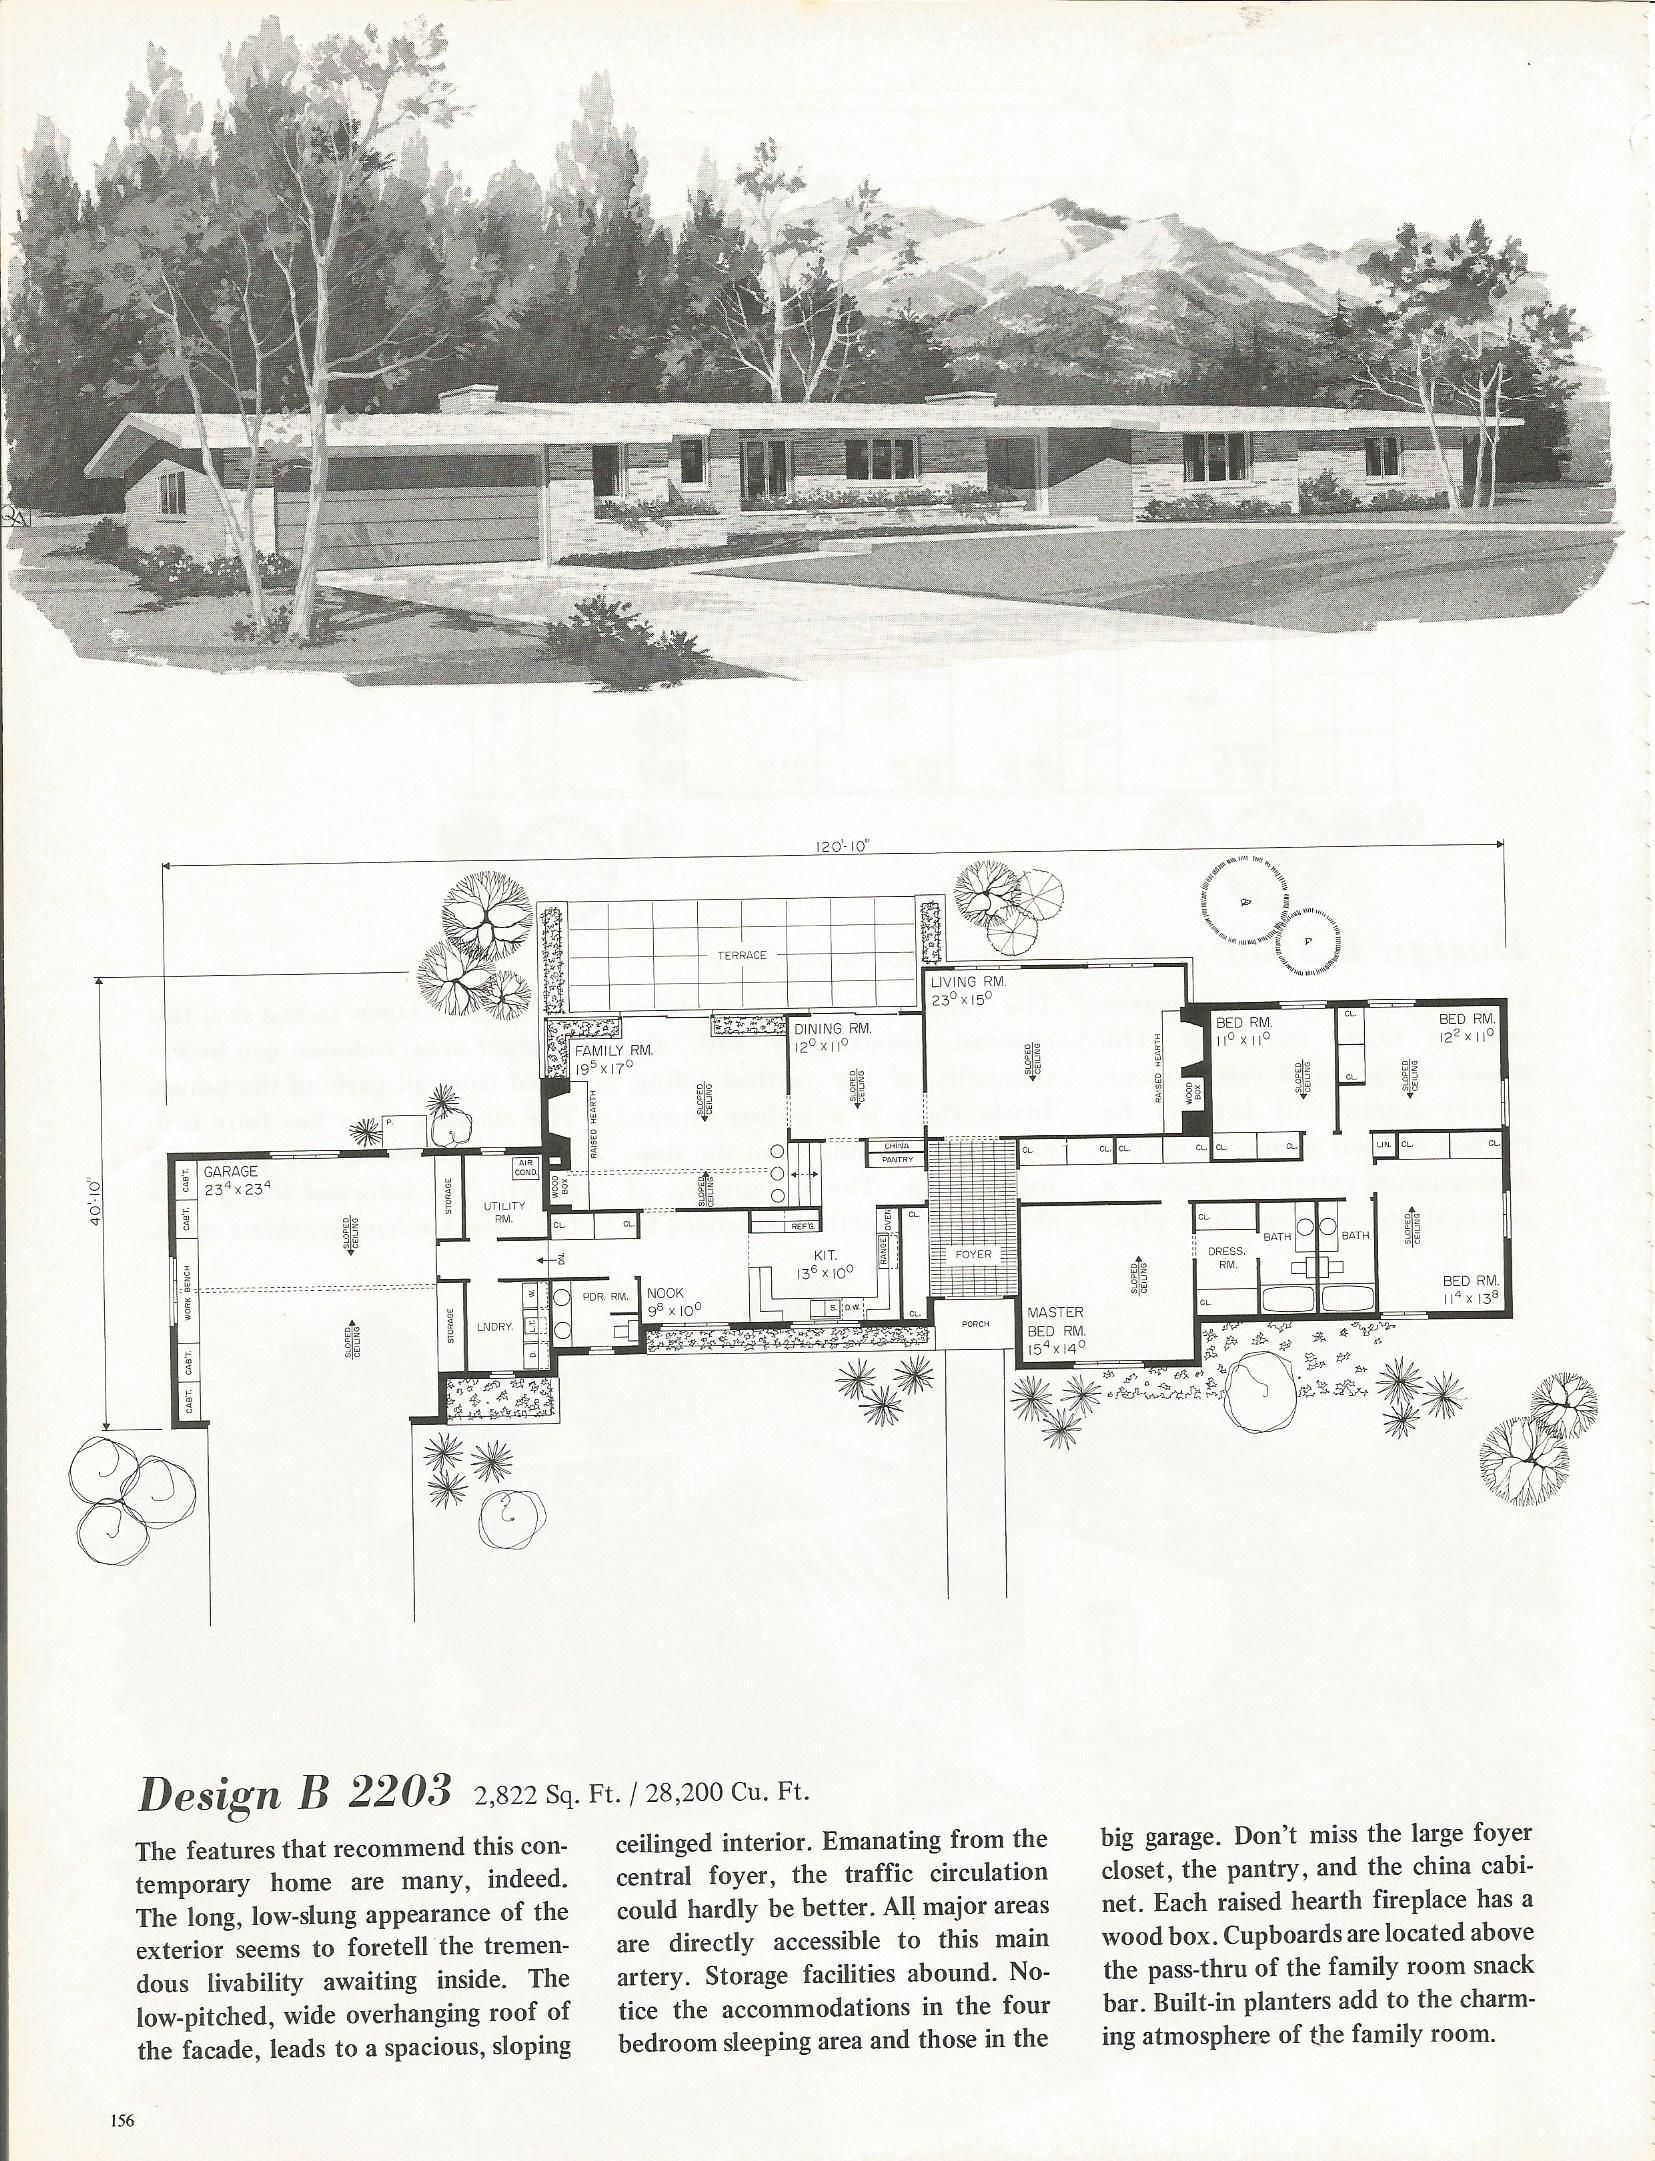 Vintage House Plans New And Refreshing Mid Century Contemporary Mid Century Modern House Plans Vintage House Plans Mid Modern House